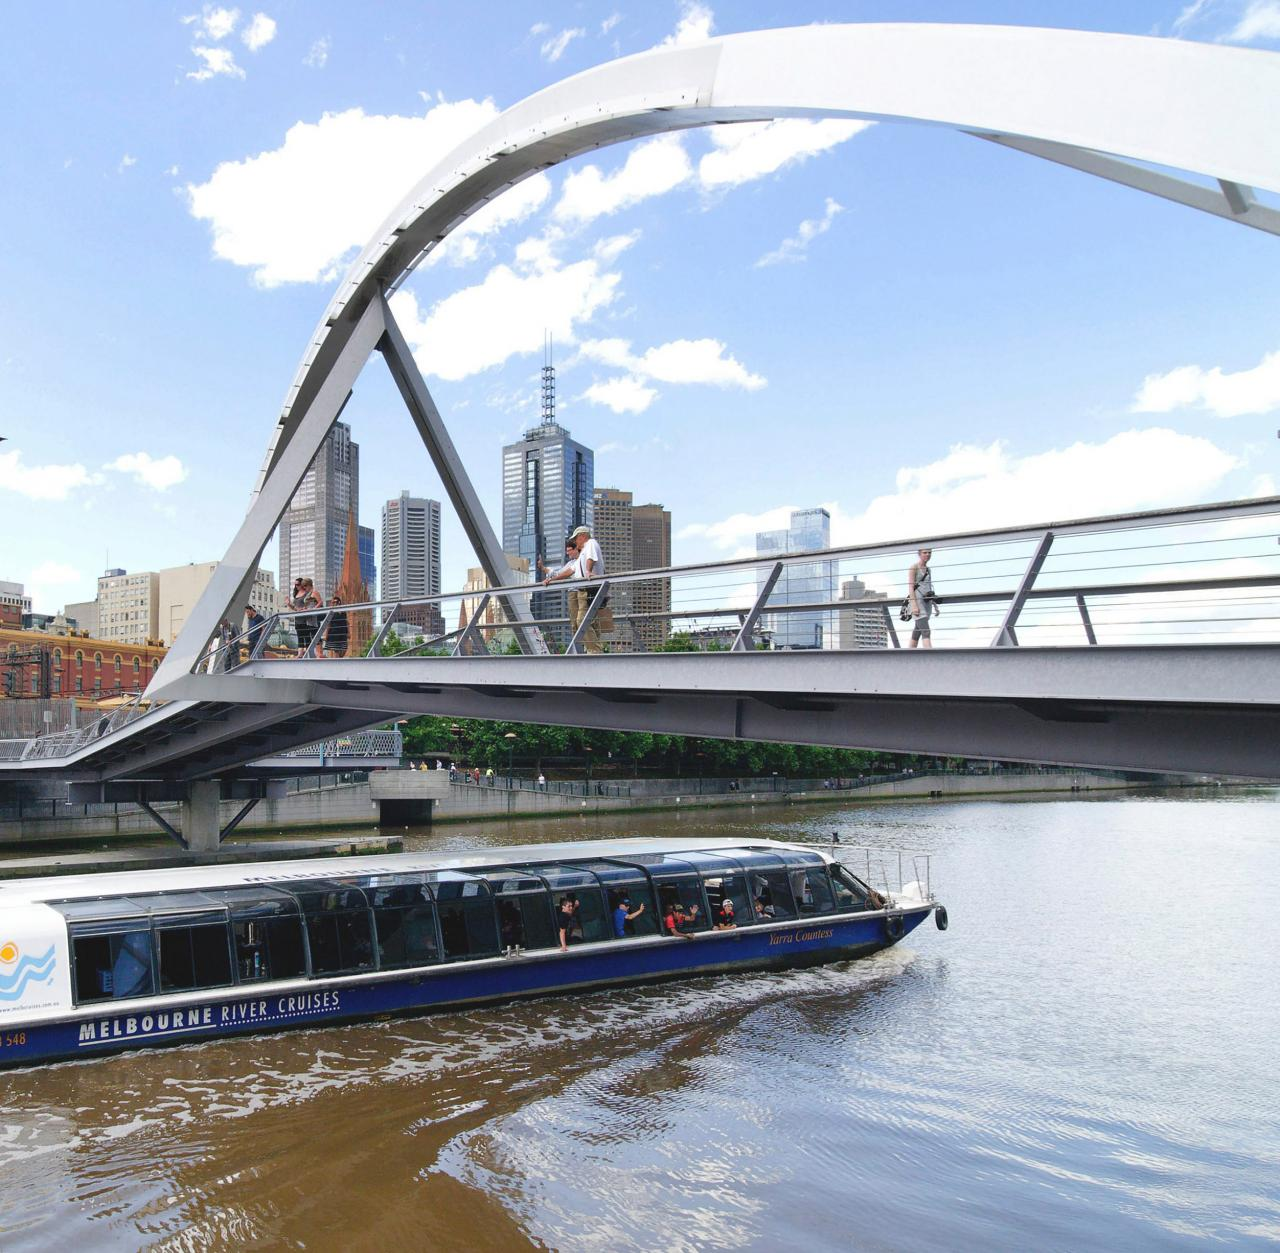 Melbourne River Cruises, passing under the Evan Walker Bridge Image courtesy of Melbourne River Cruises